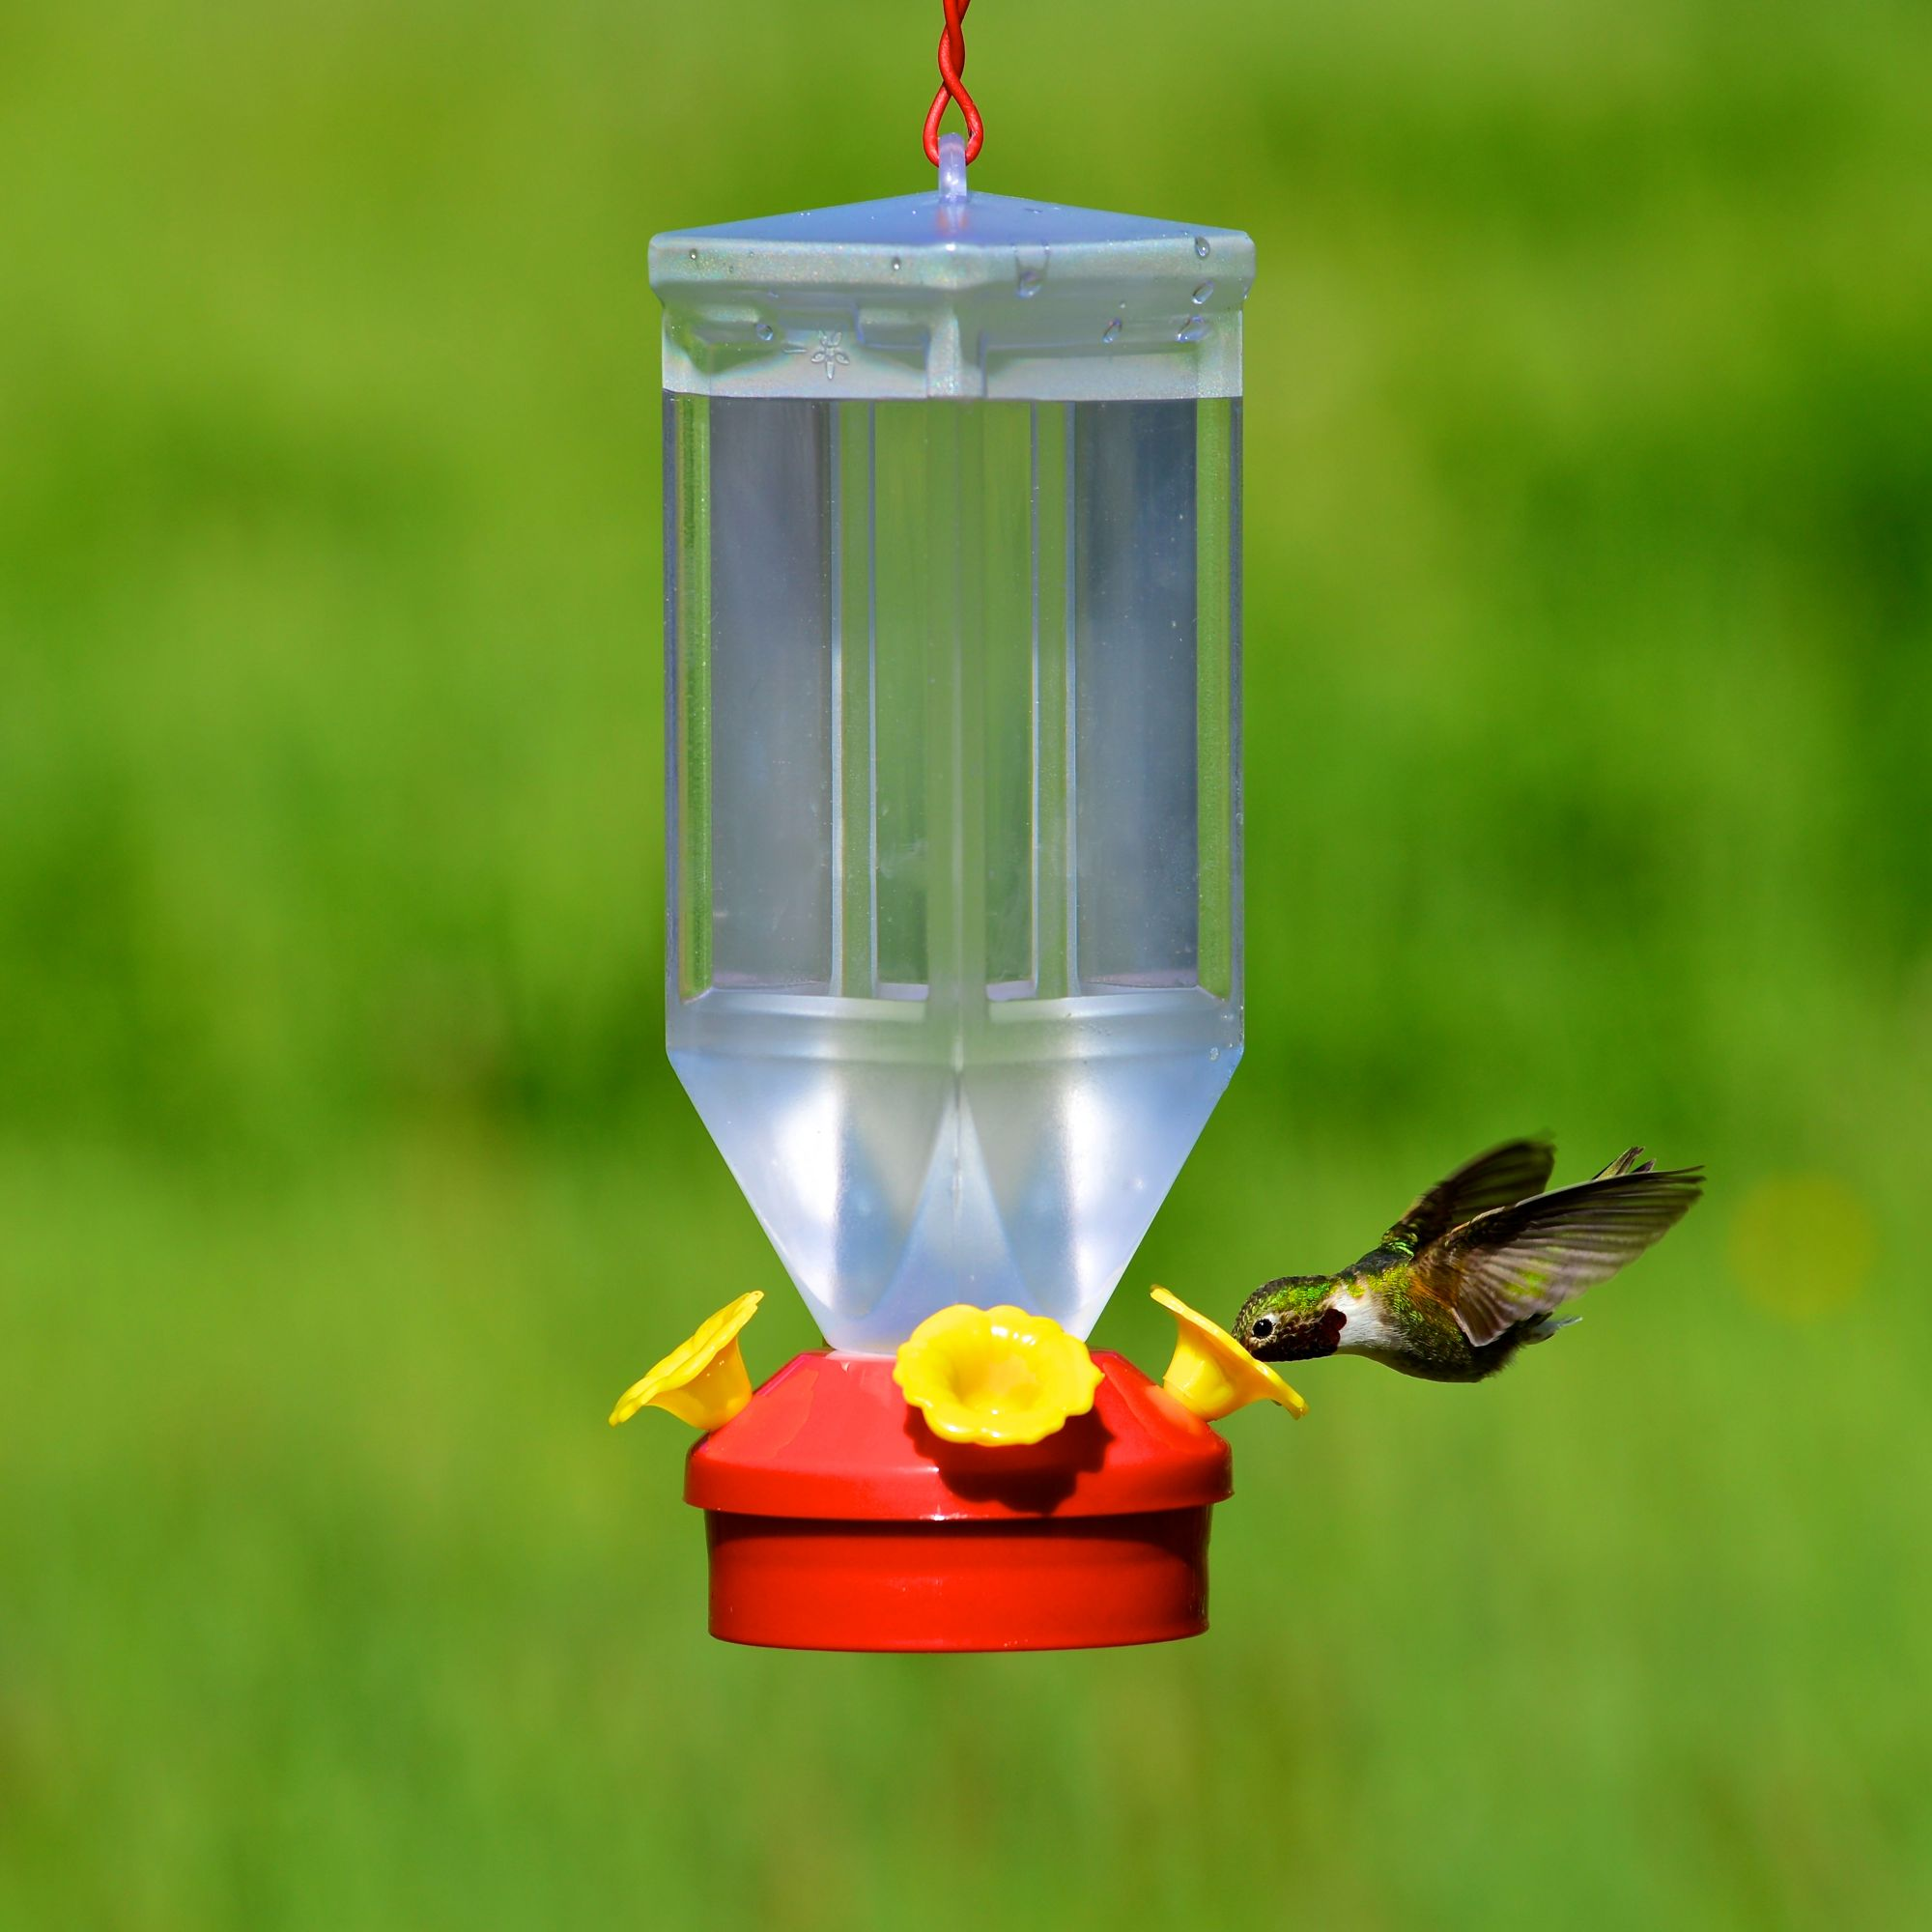 hummingbird glass perky clear decorative bf feeder pet feeders bottle model us antique